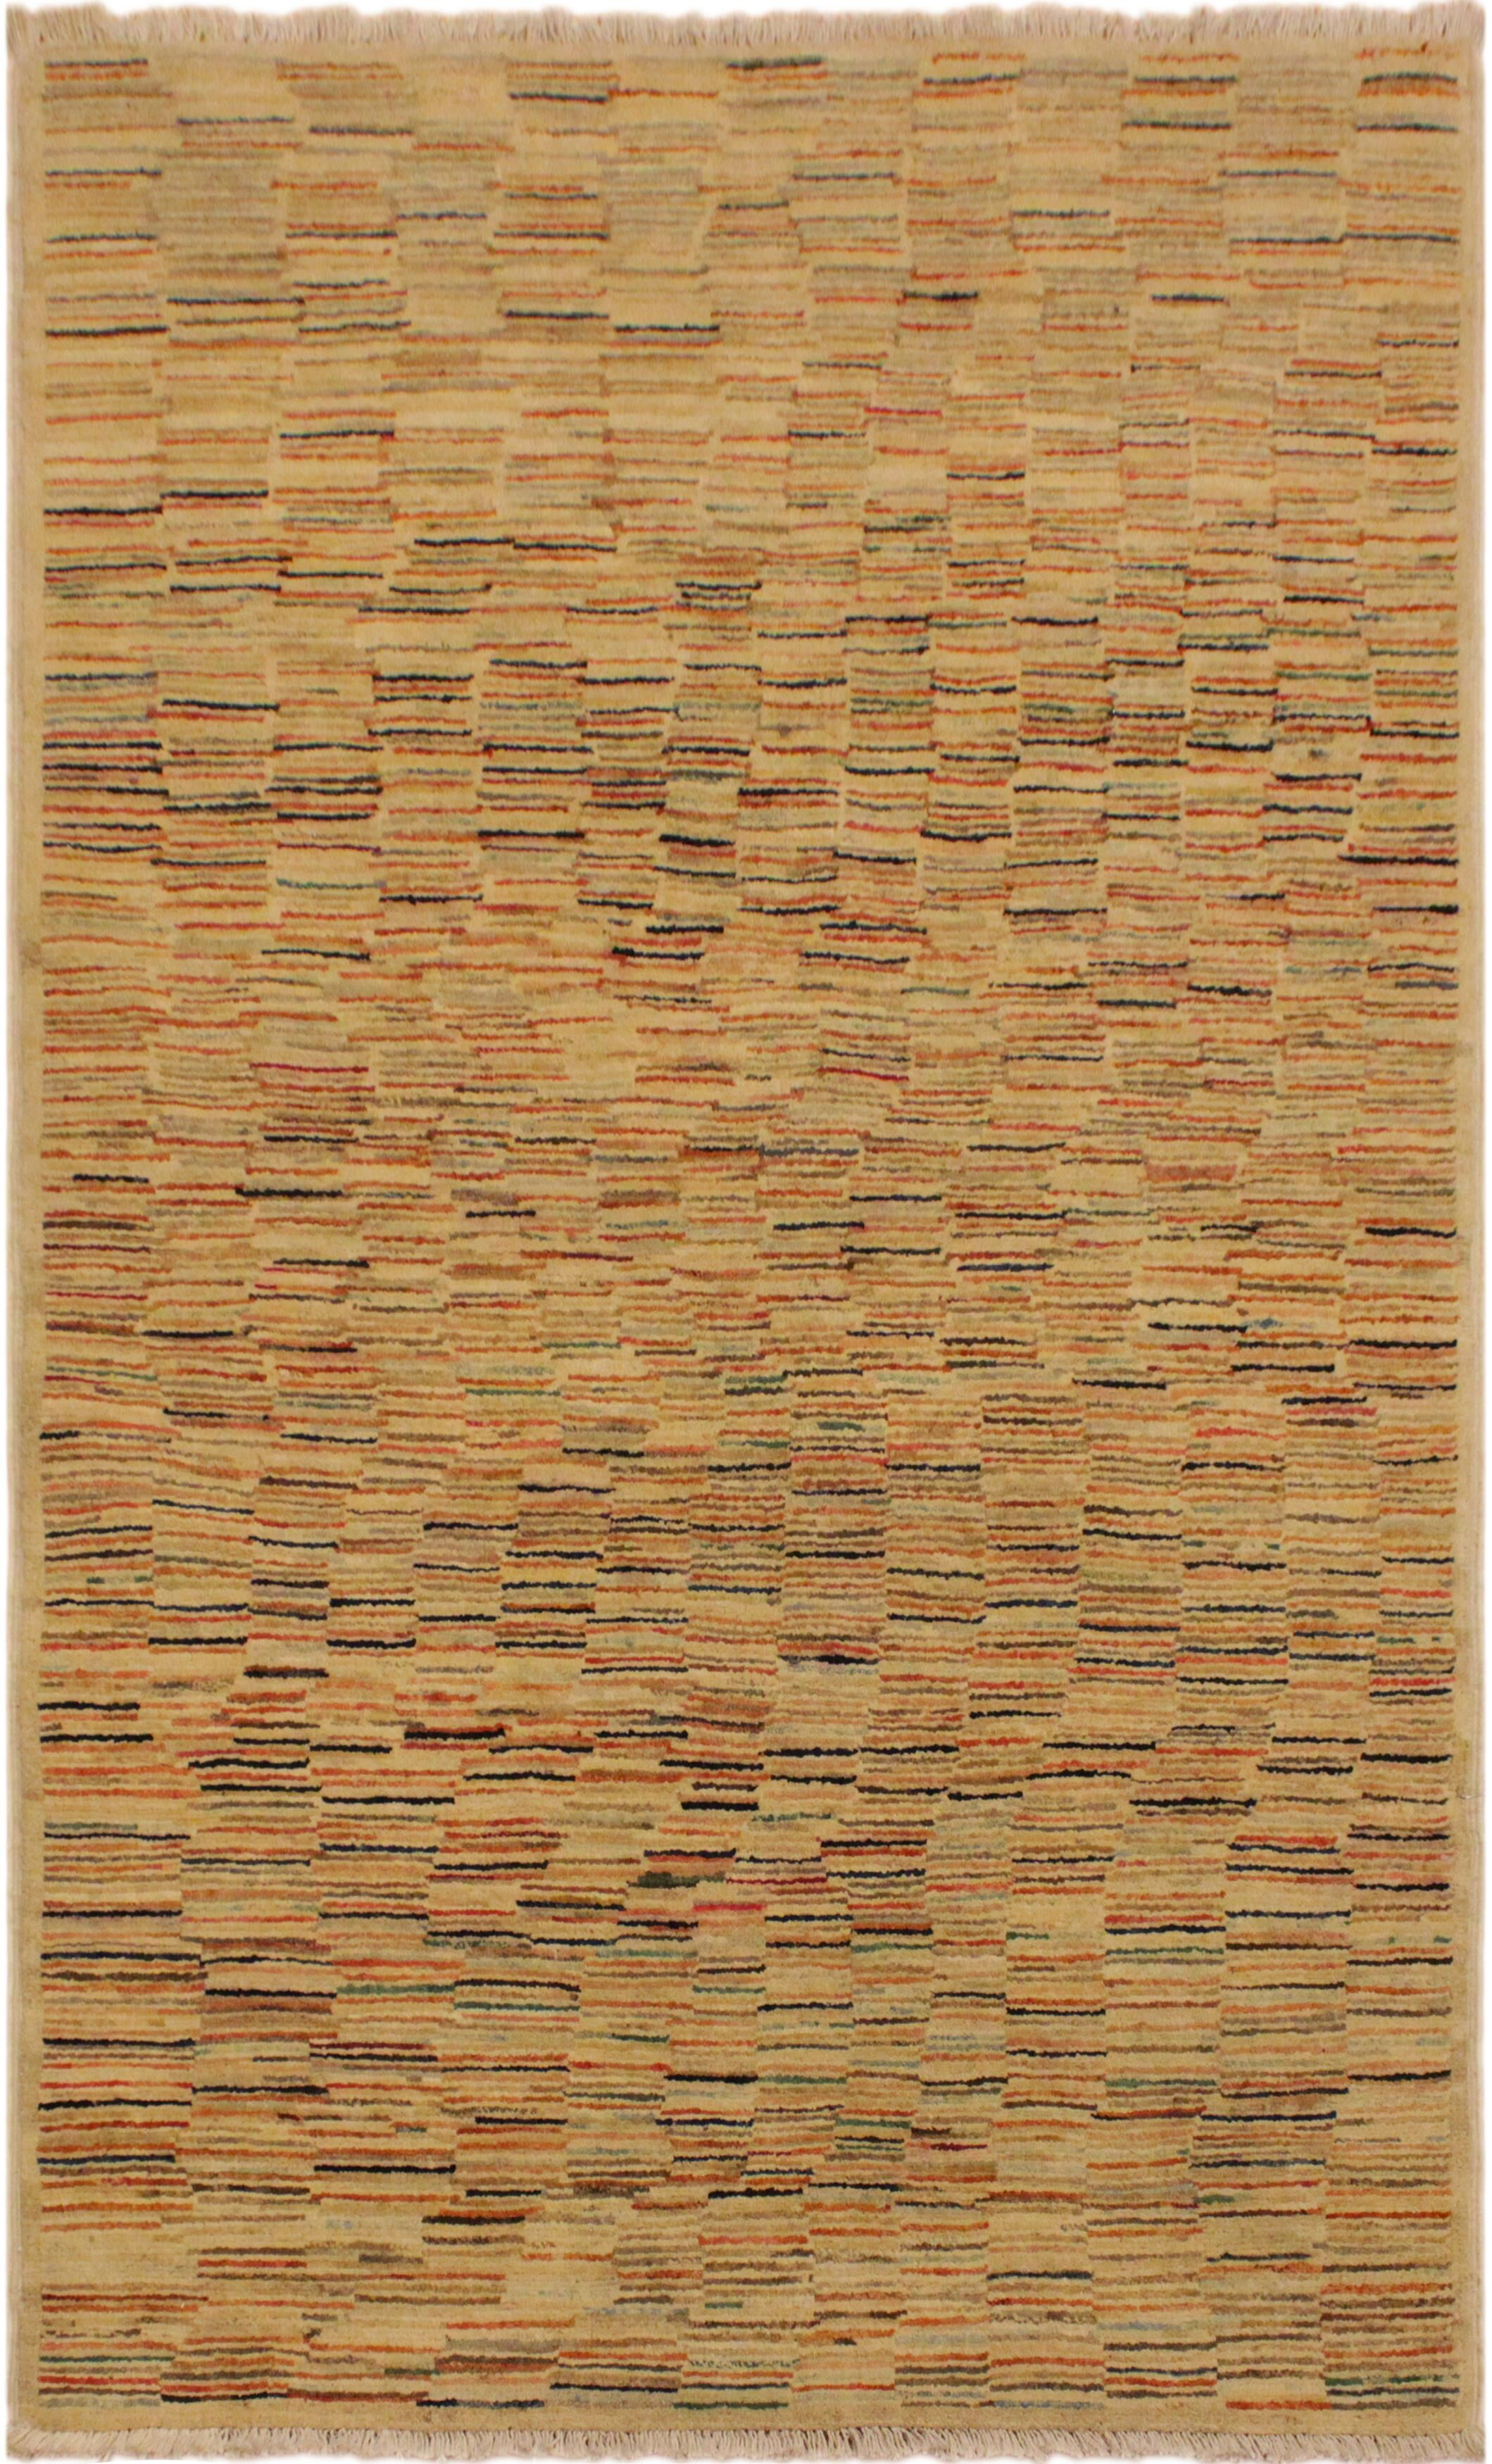 One-of-a-Kind Roeder Hand-Knotted Wool Tan/Rust Area Rug